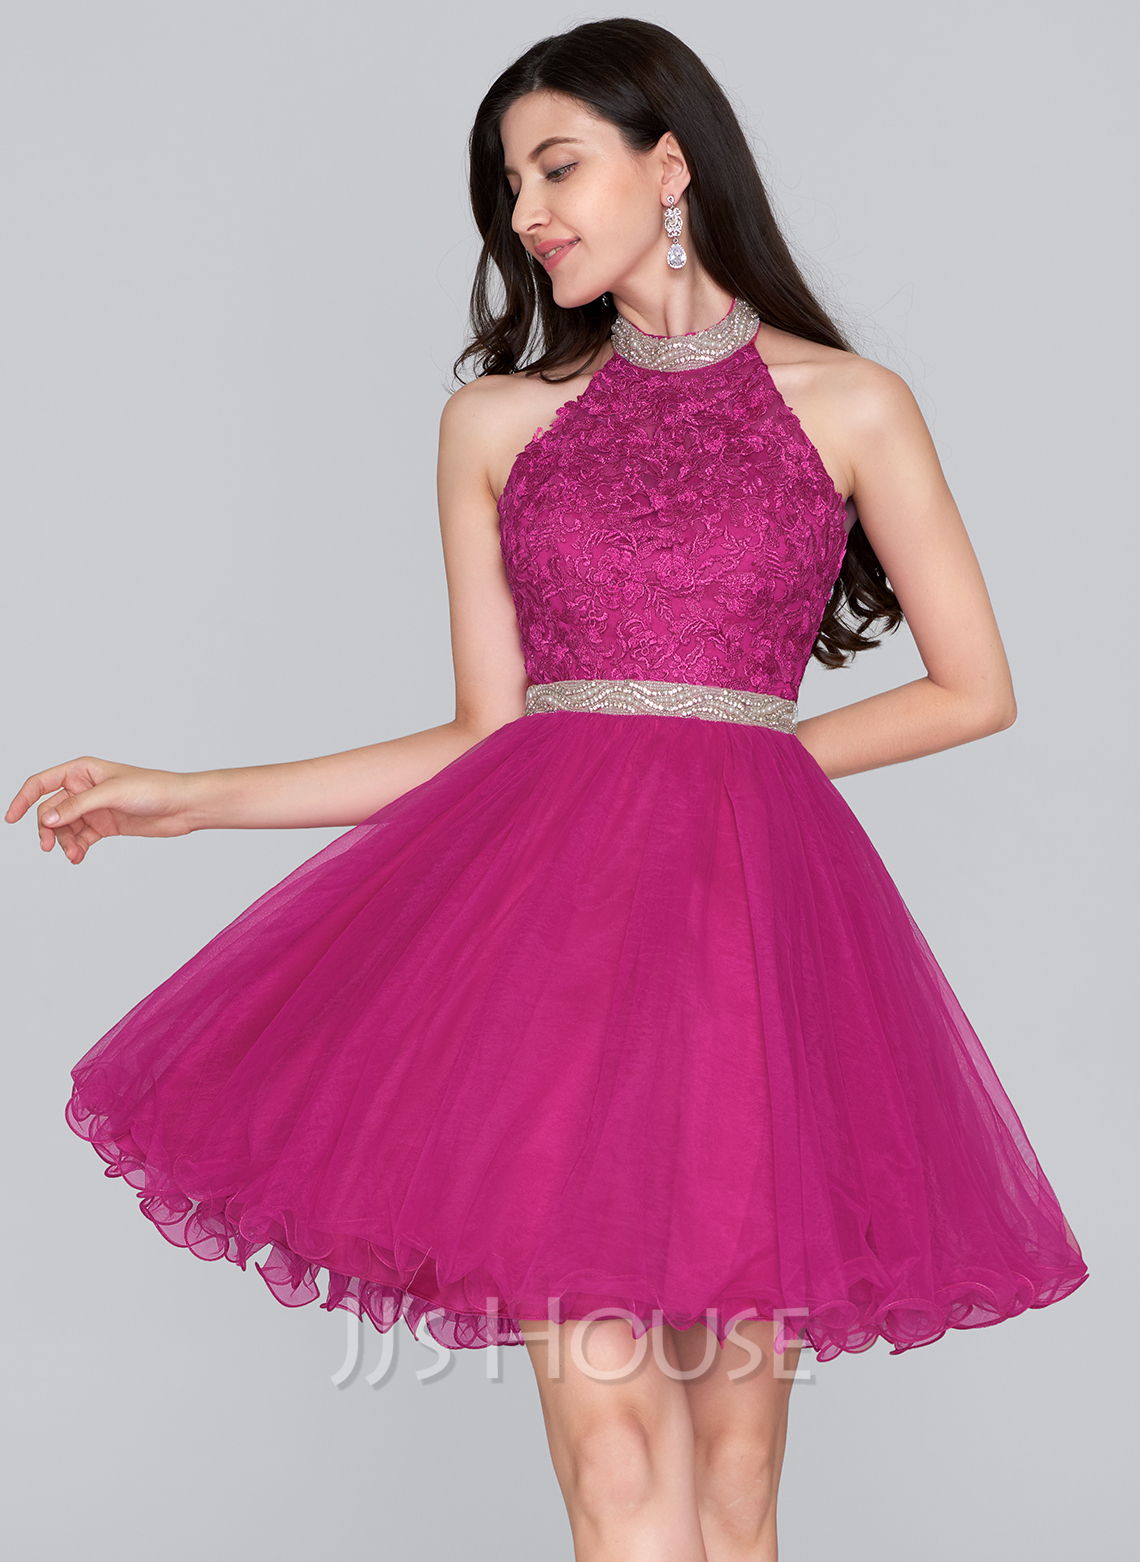 Alineprincess Halter Shortmini Tulle Homeing Dress With Beading Loading Zoom: Magenta Short Wedding Dresses At Websimilar.org